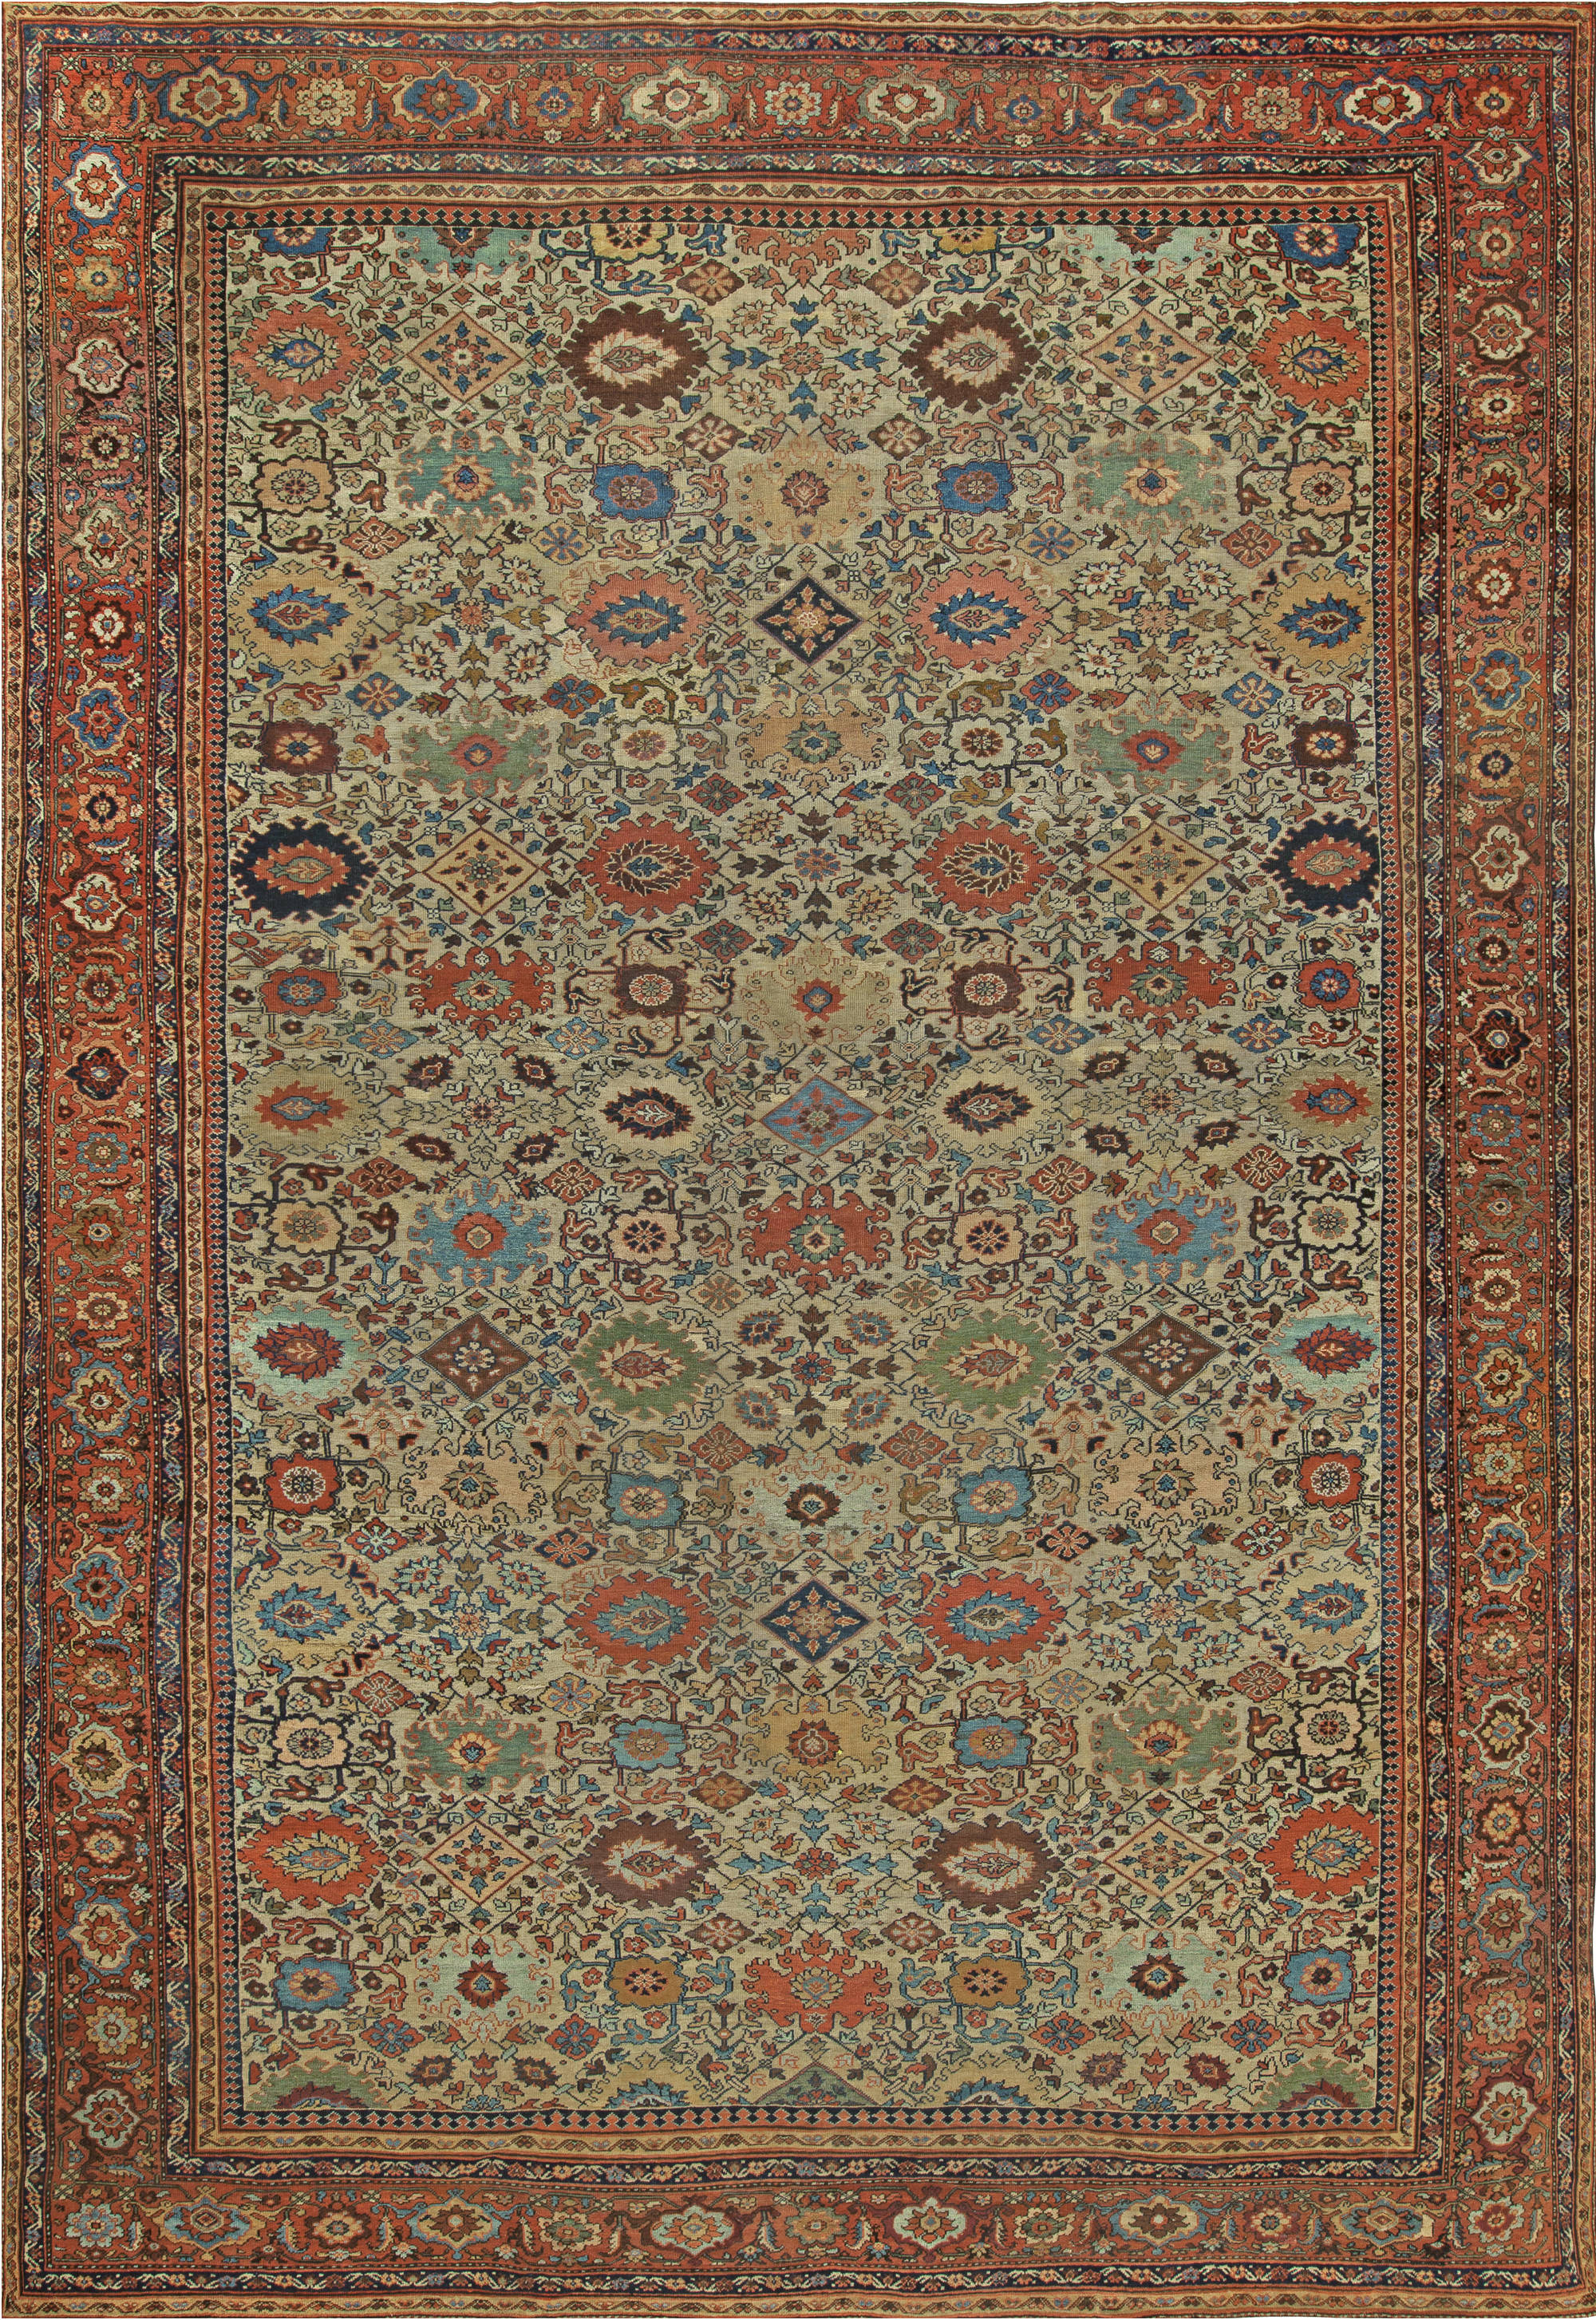 sultanabad antique rug bb6825doris leslie blau Antique Rugs